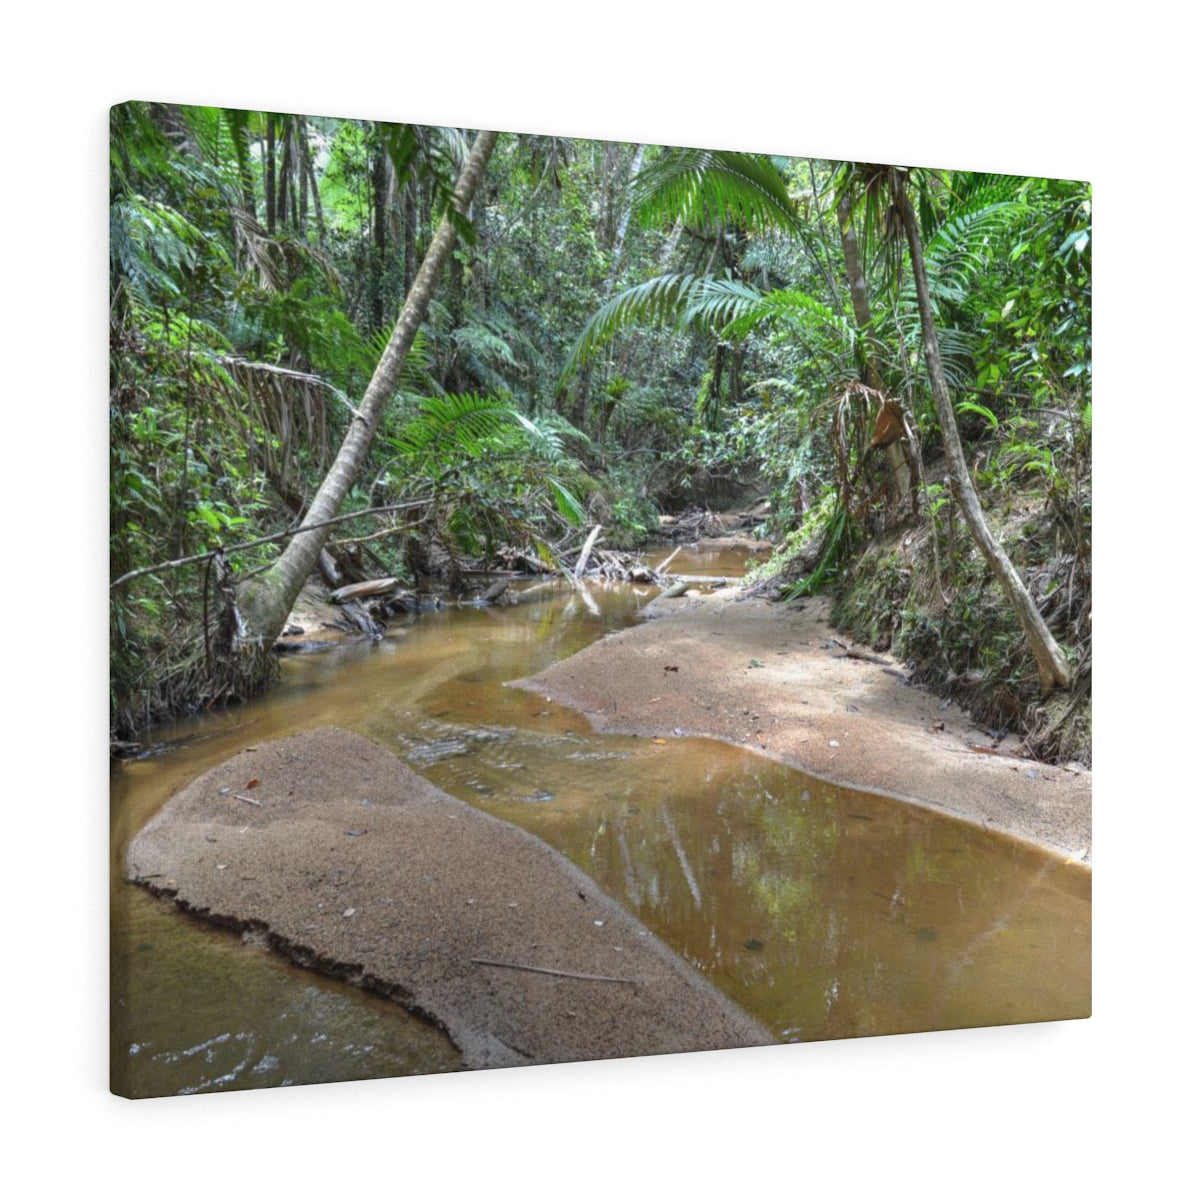 Holy Spirit river deep forest explorations  - El Yunque rainforest - Canvas Gallery Wraps